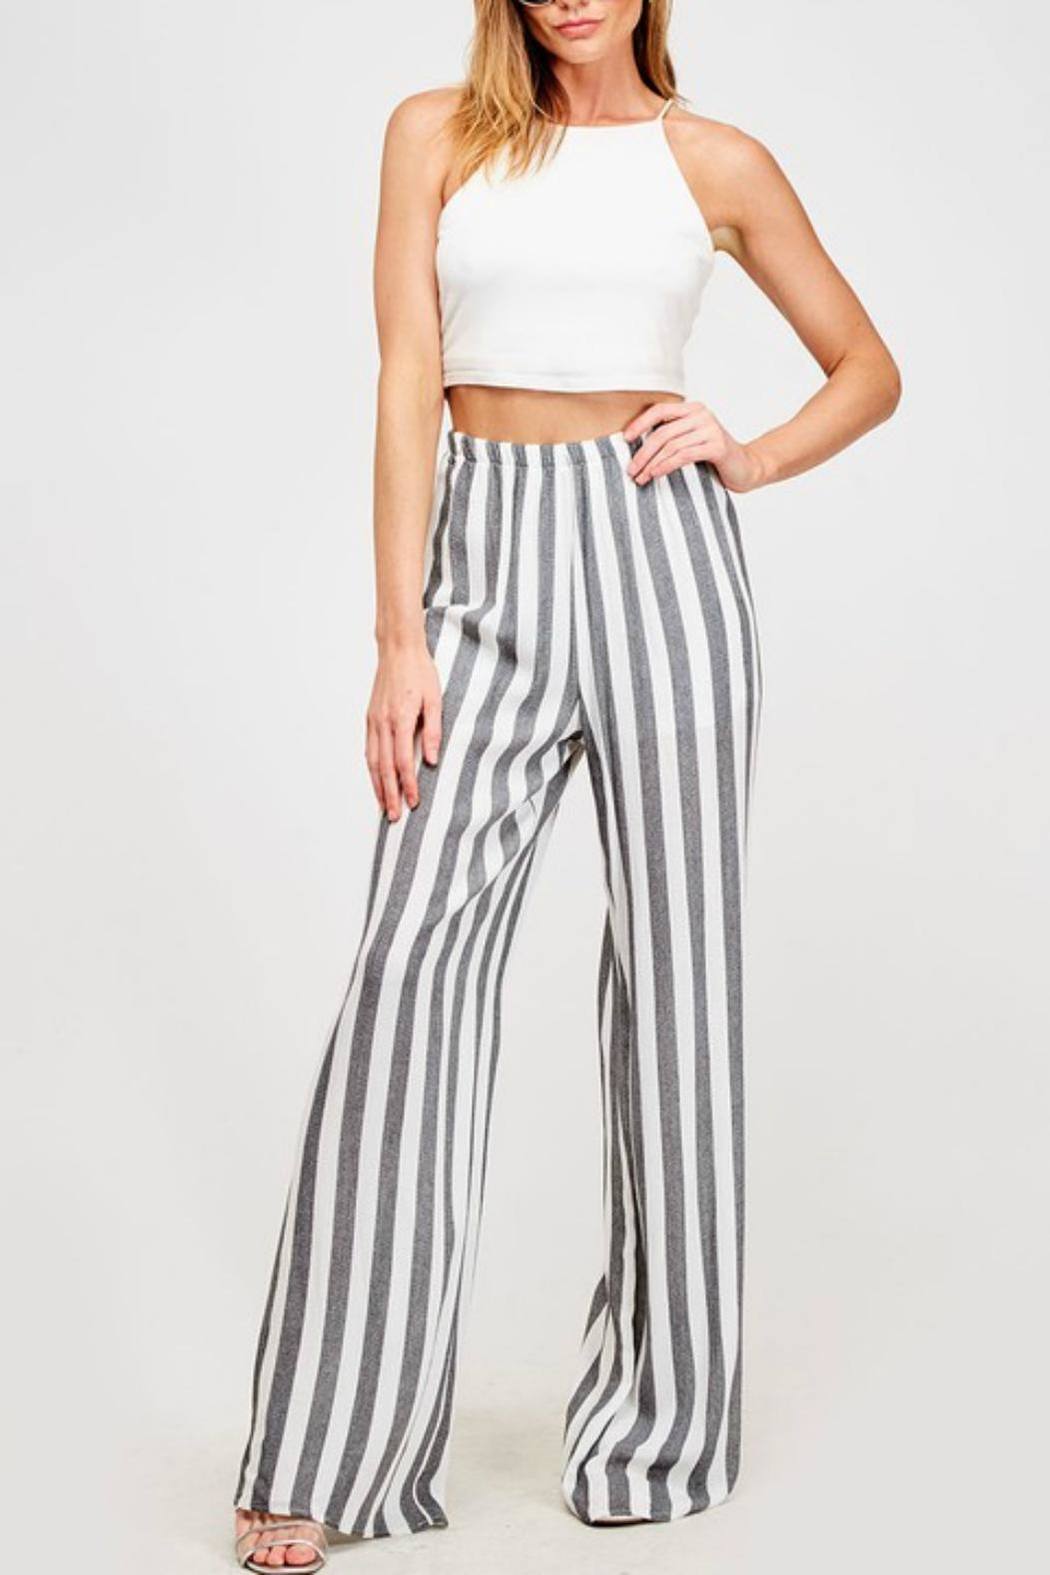 Pretty Little Things Cabana Palazzo Pants - Front Cropped Image